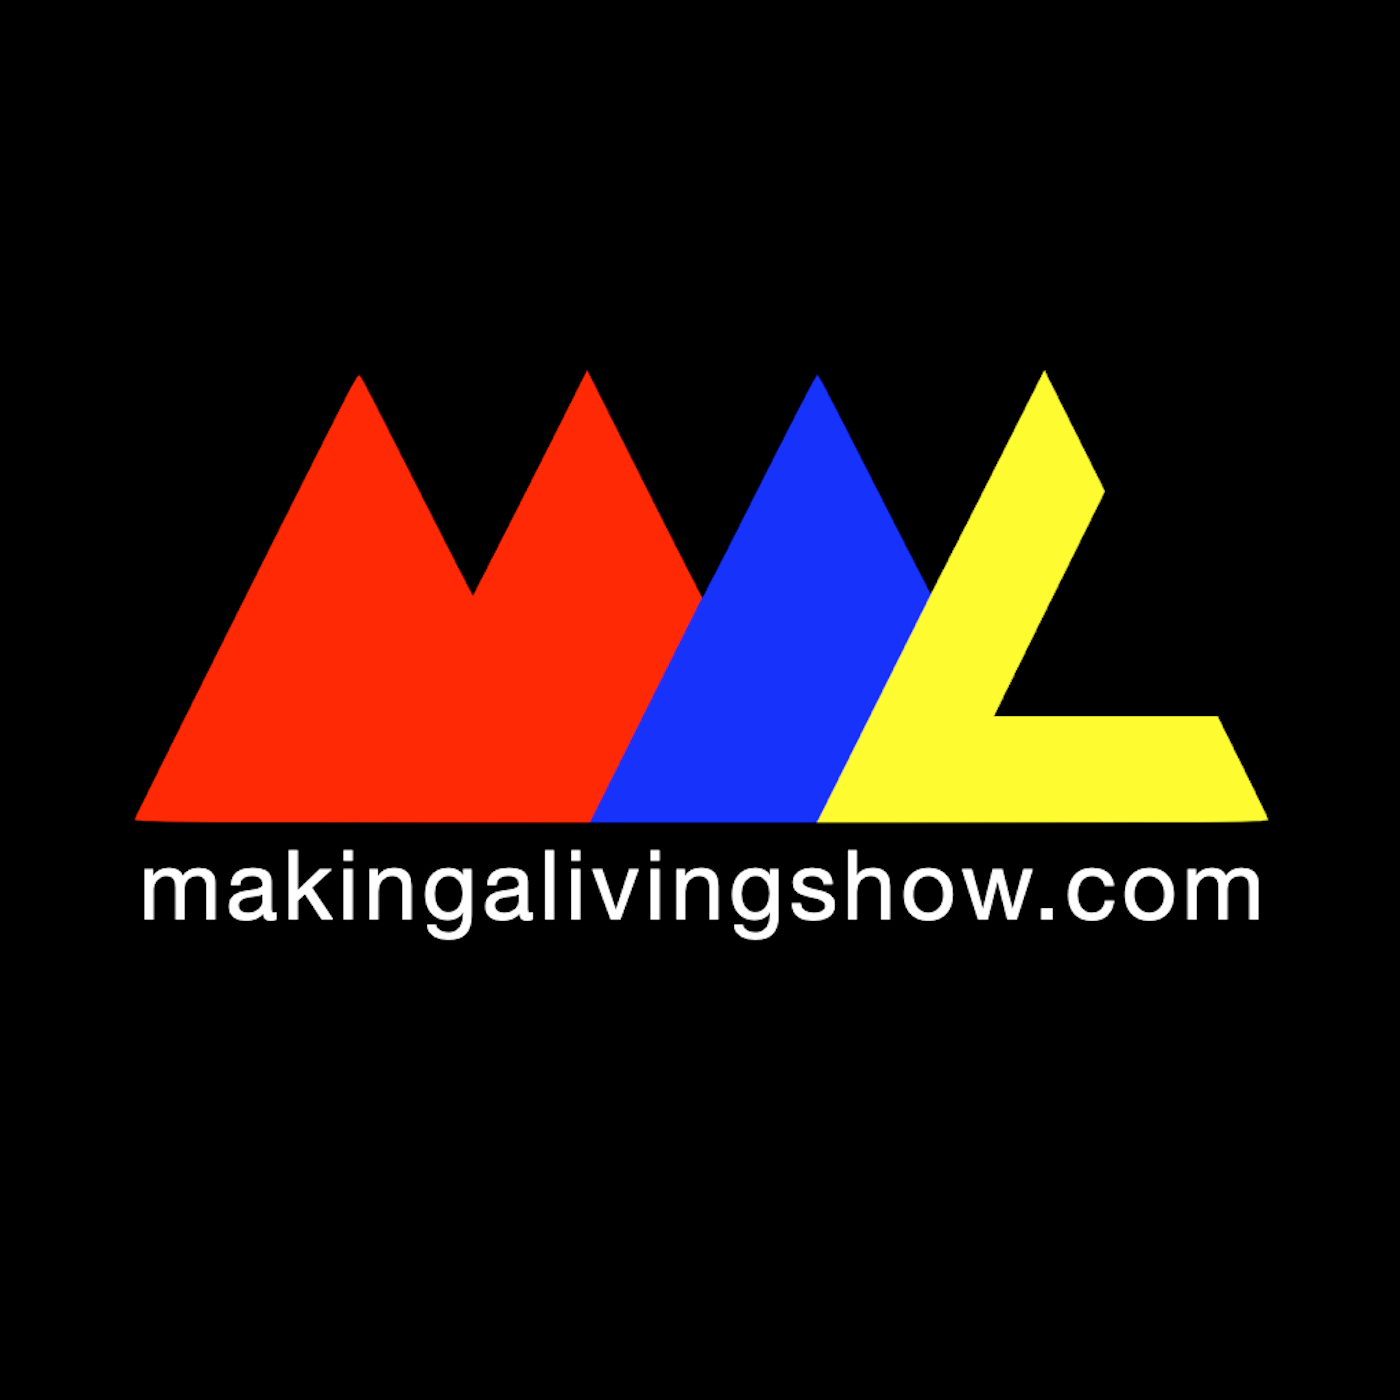 Making A Living Show Podcast Interview: Episode 10 - Urban Minimalist